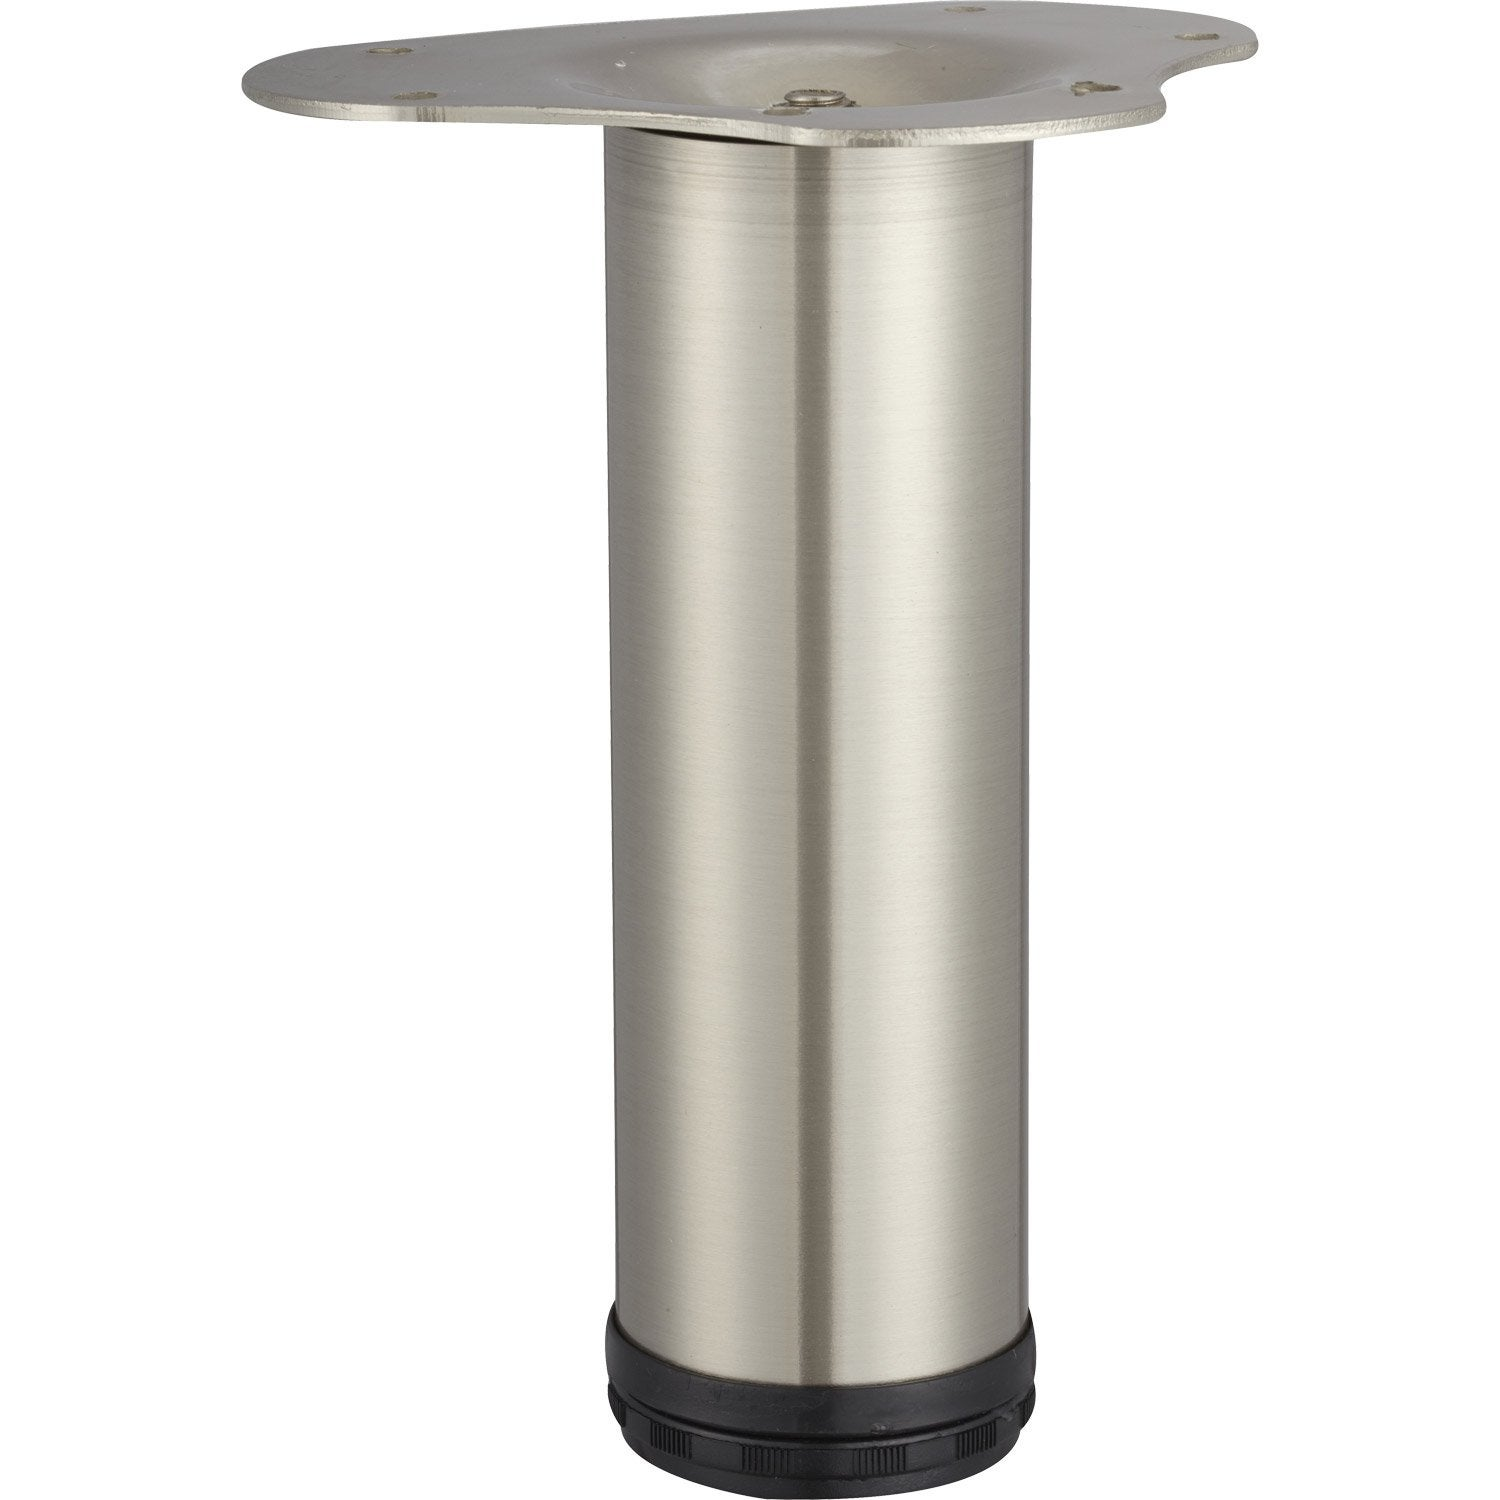 Pied de table basse cylindrique r glable en acier bross gris 20cmx60mm le - Table basse pied central ...